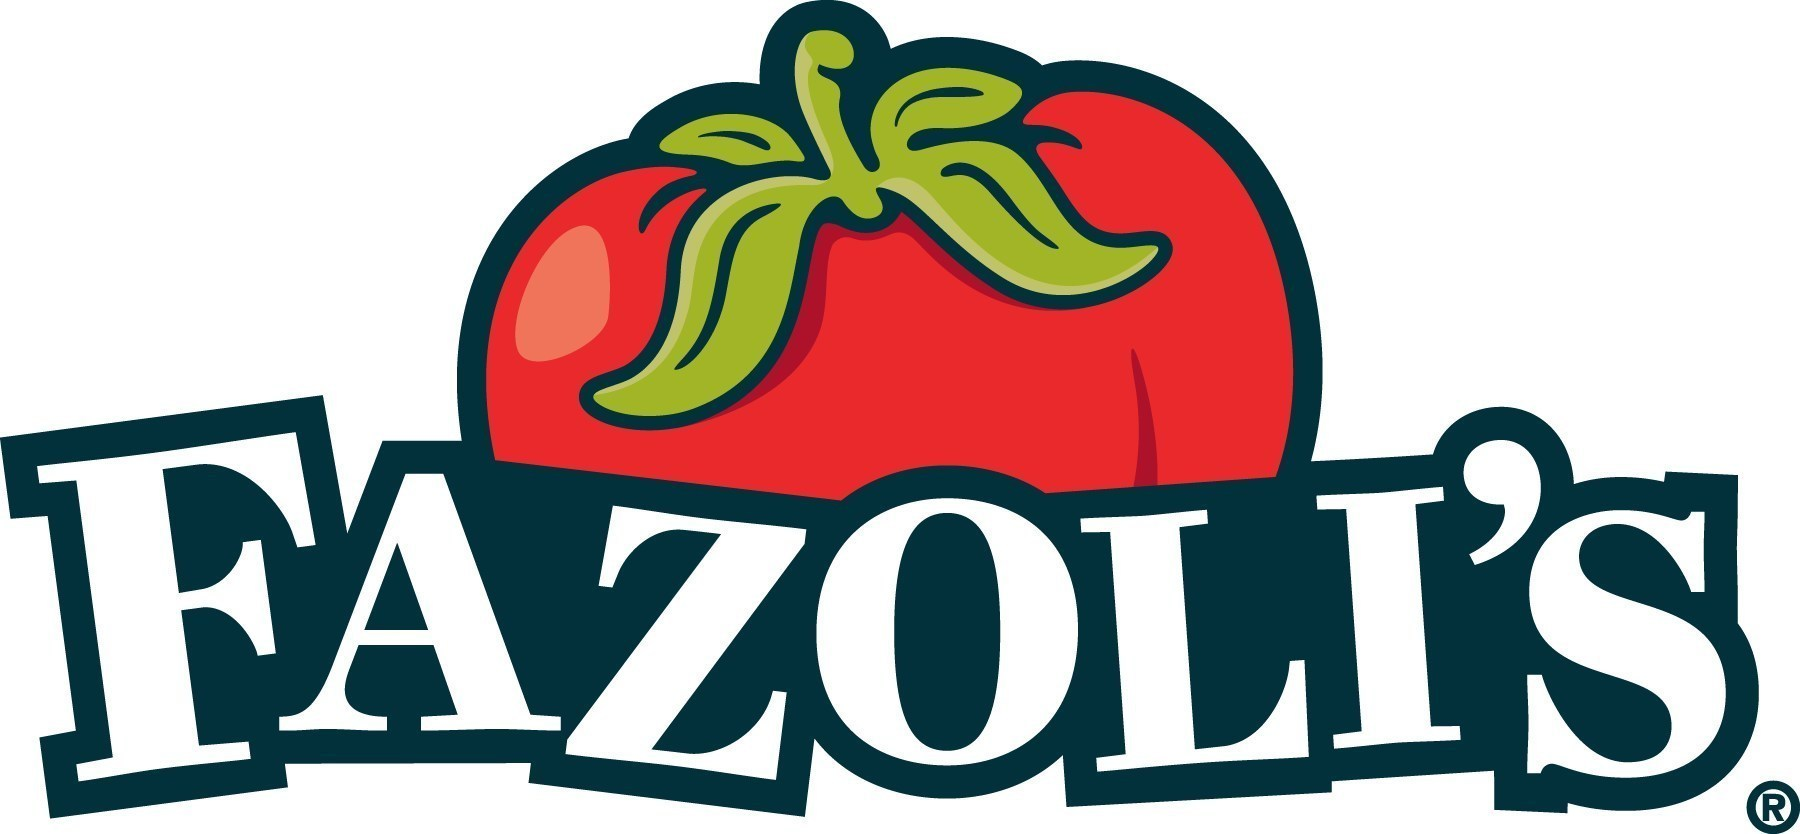 Fazoli's Italian Chain Launches New Military Discount